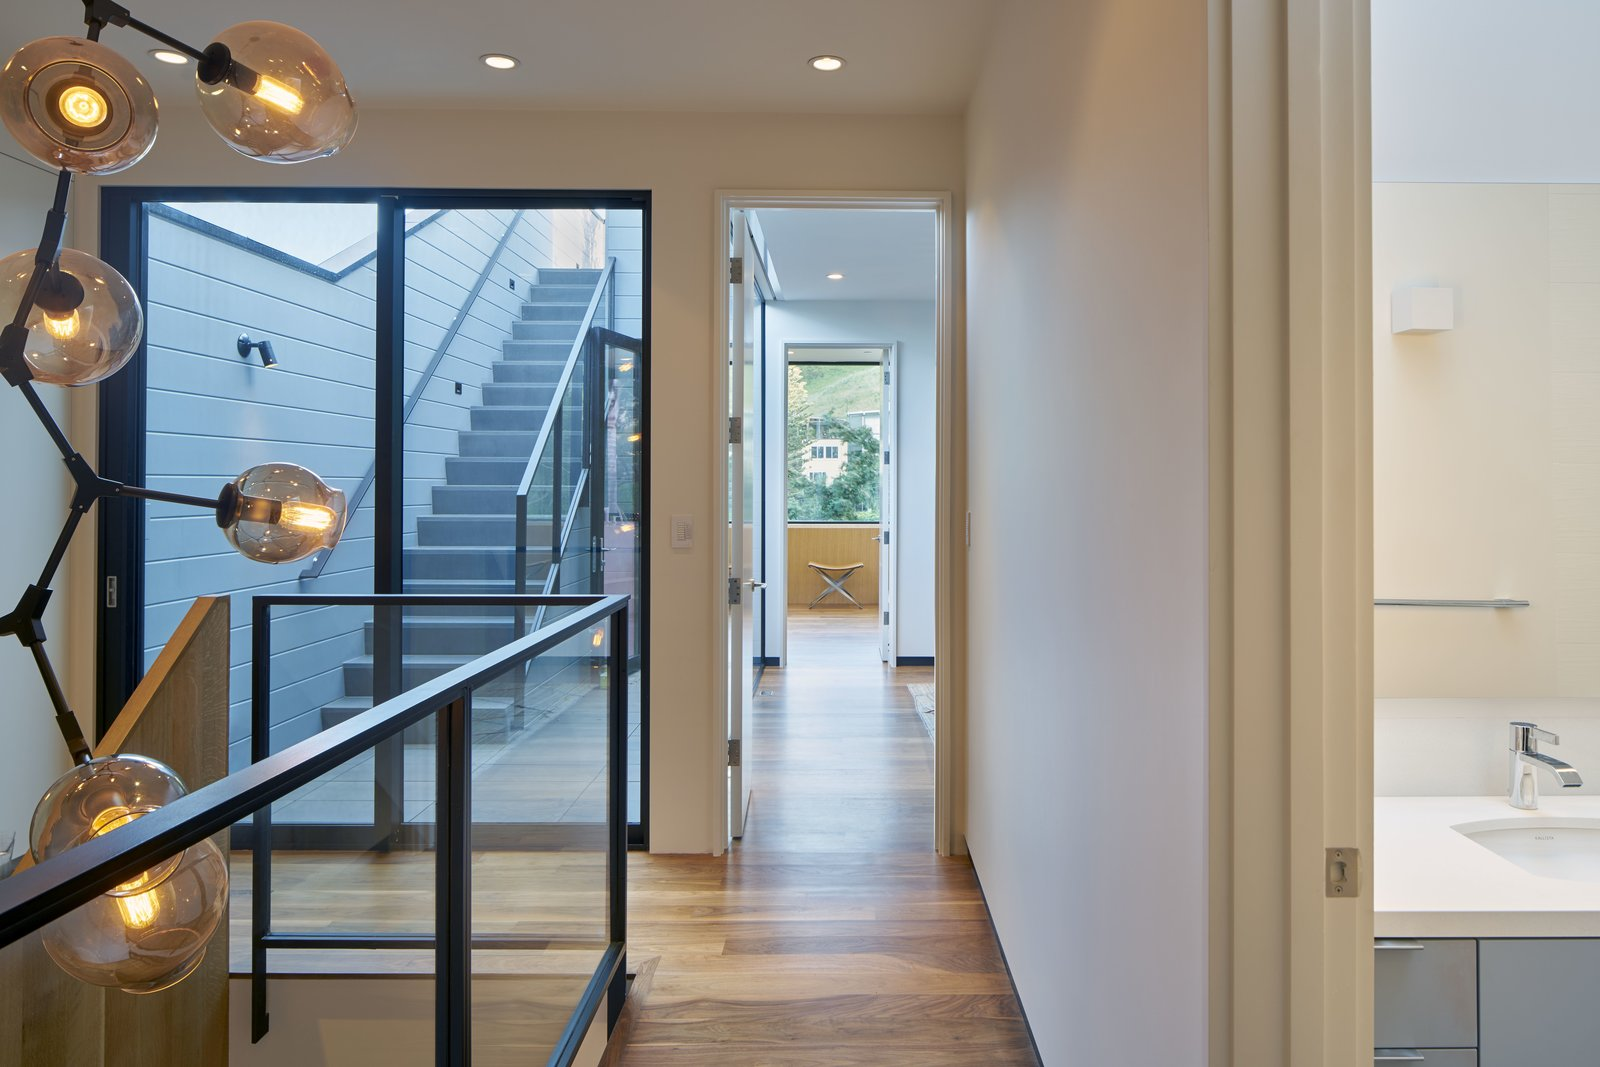 Tagged: Hallway.  29th Street Residence by Schwartz and Architecture